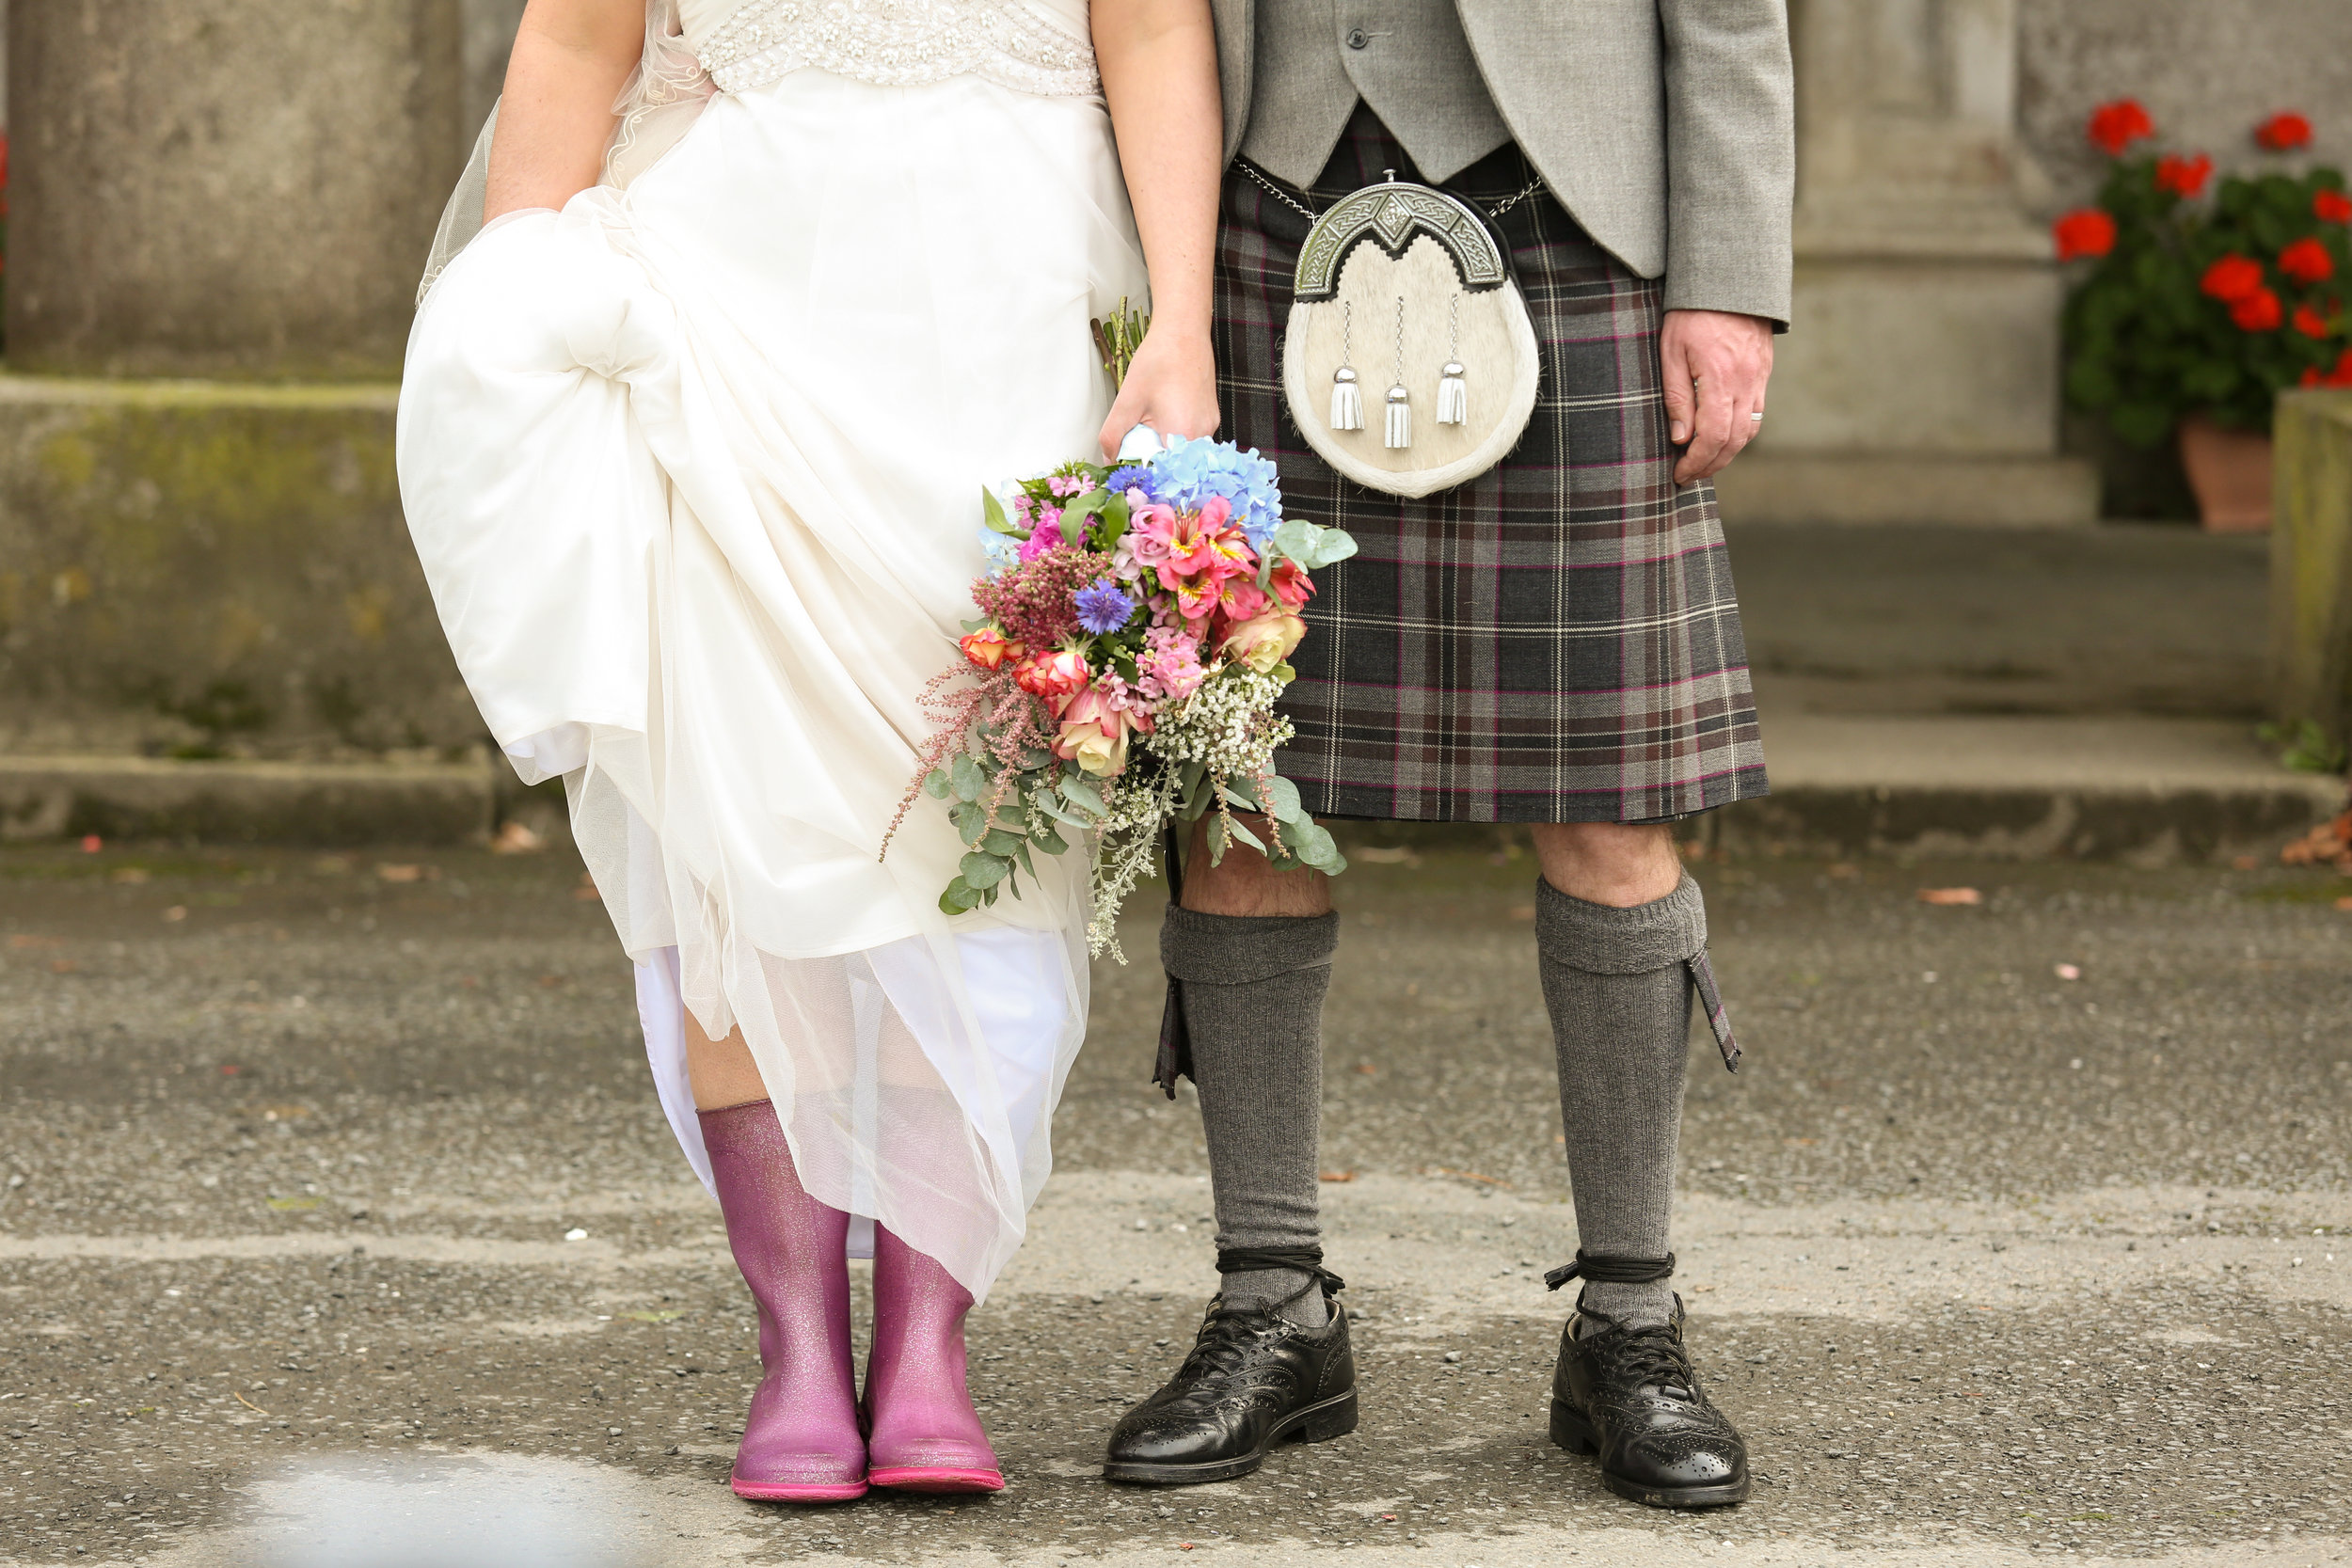 orlando-wedding-photographer-destination-wedding-scotland-castle-kilt-rain-boots.jpg